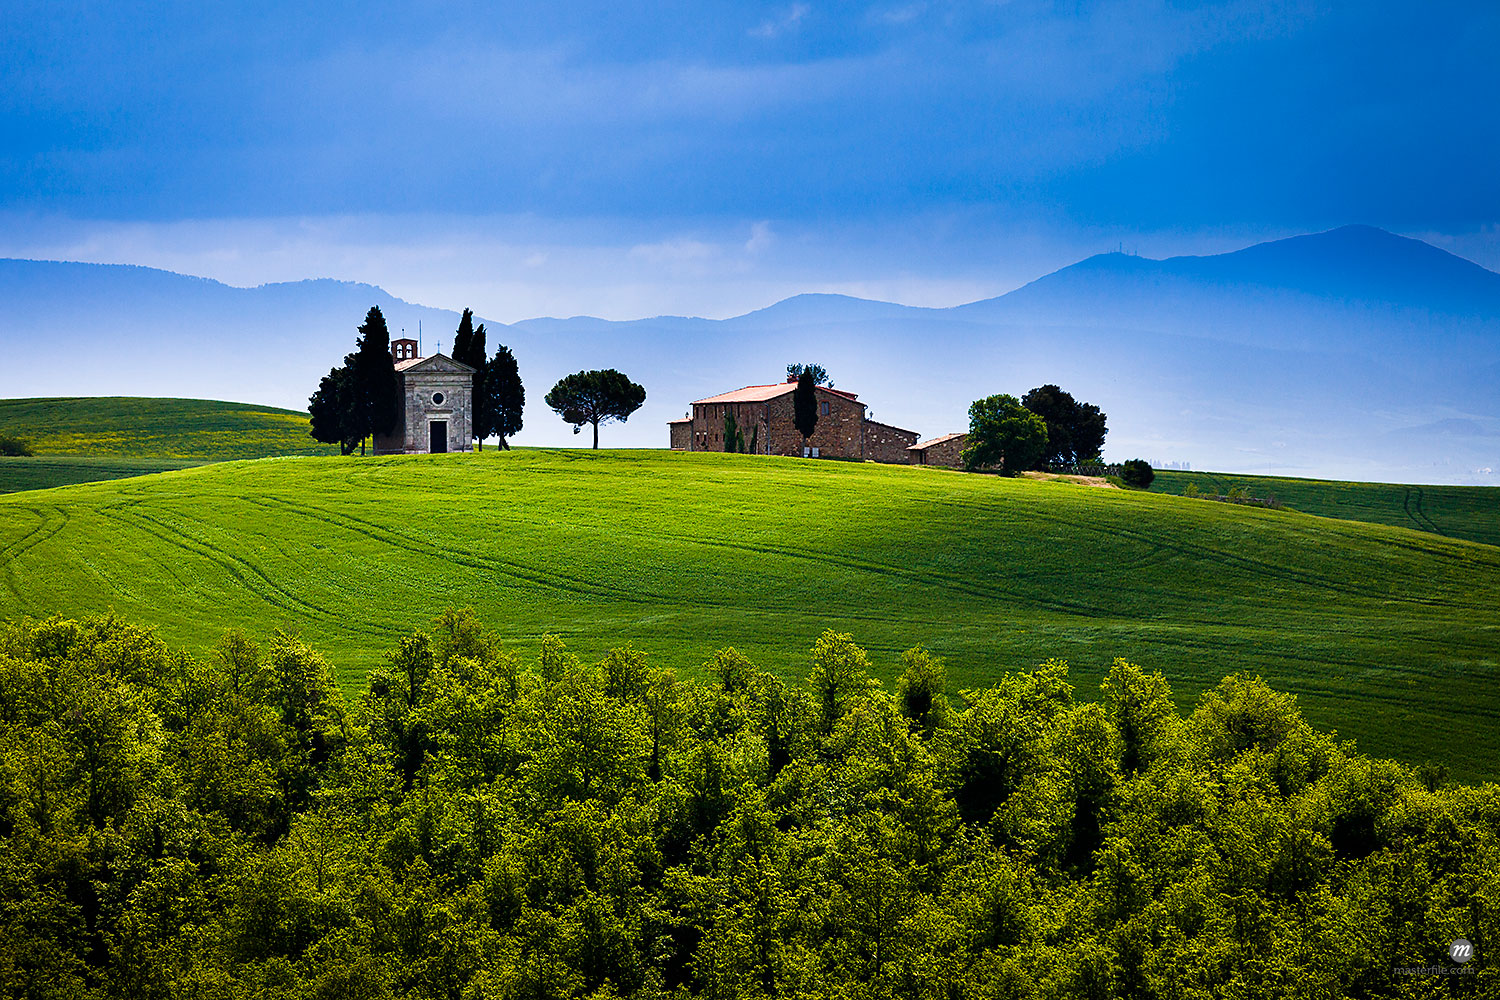 Church of Madonna di Vitaleta and Farmhouse, San Quirico d'Orcia, Province of Siena, Tuscany, Italy  © R. Ian Lloyd / Masterfile